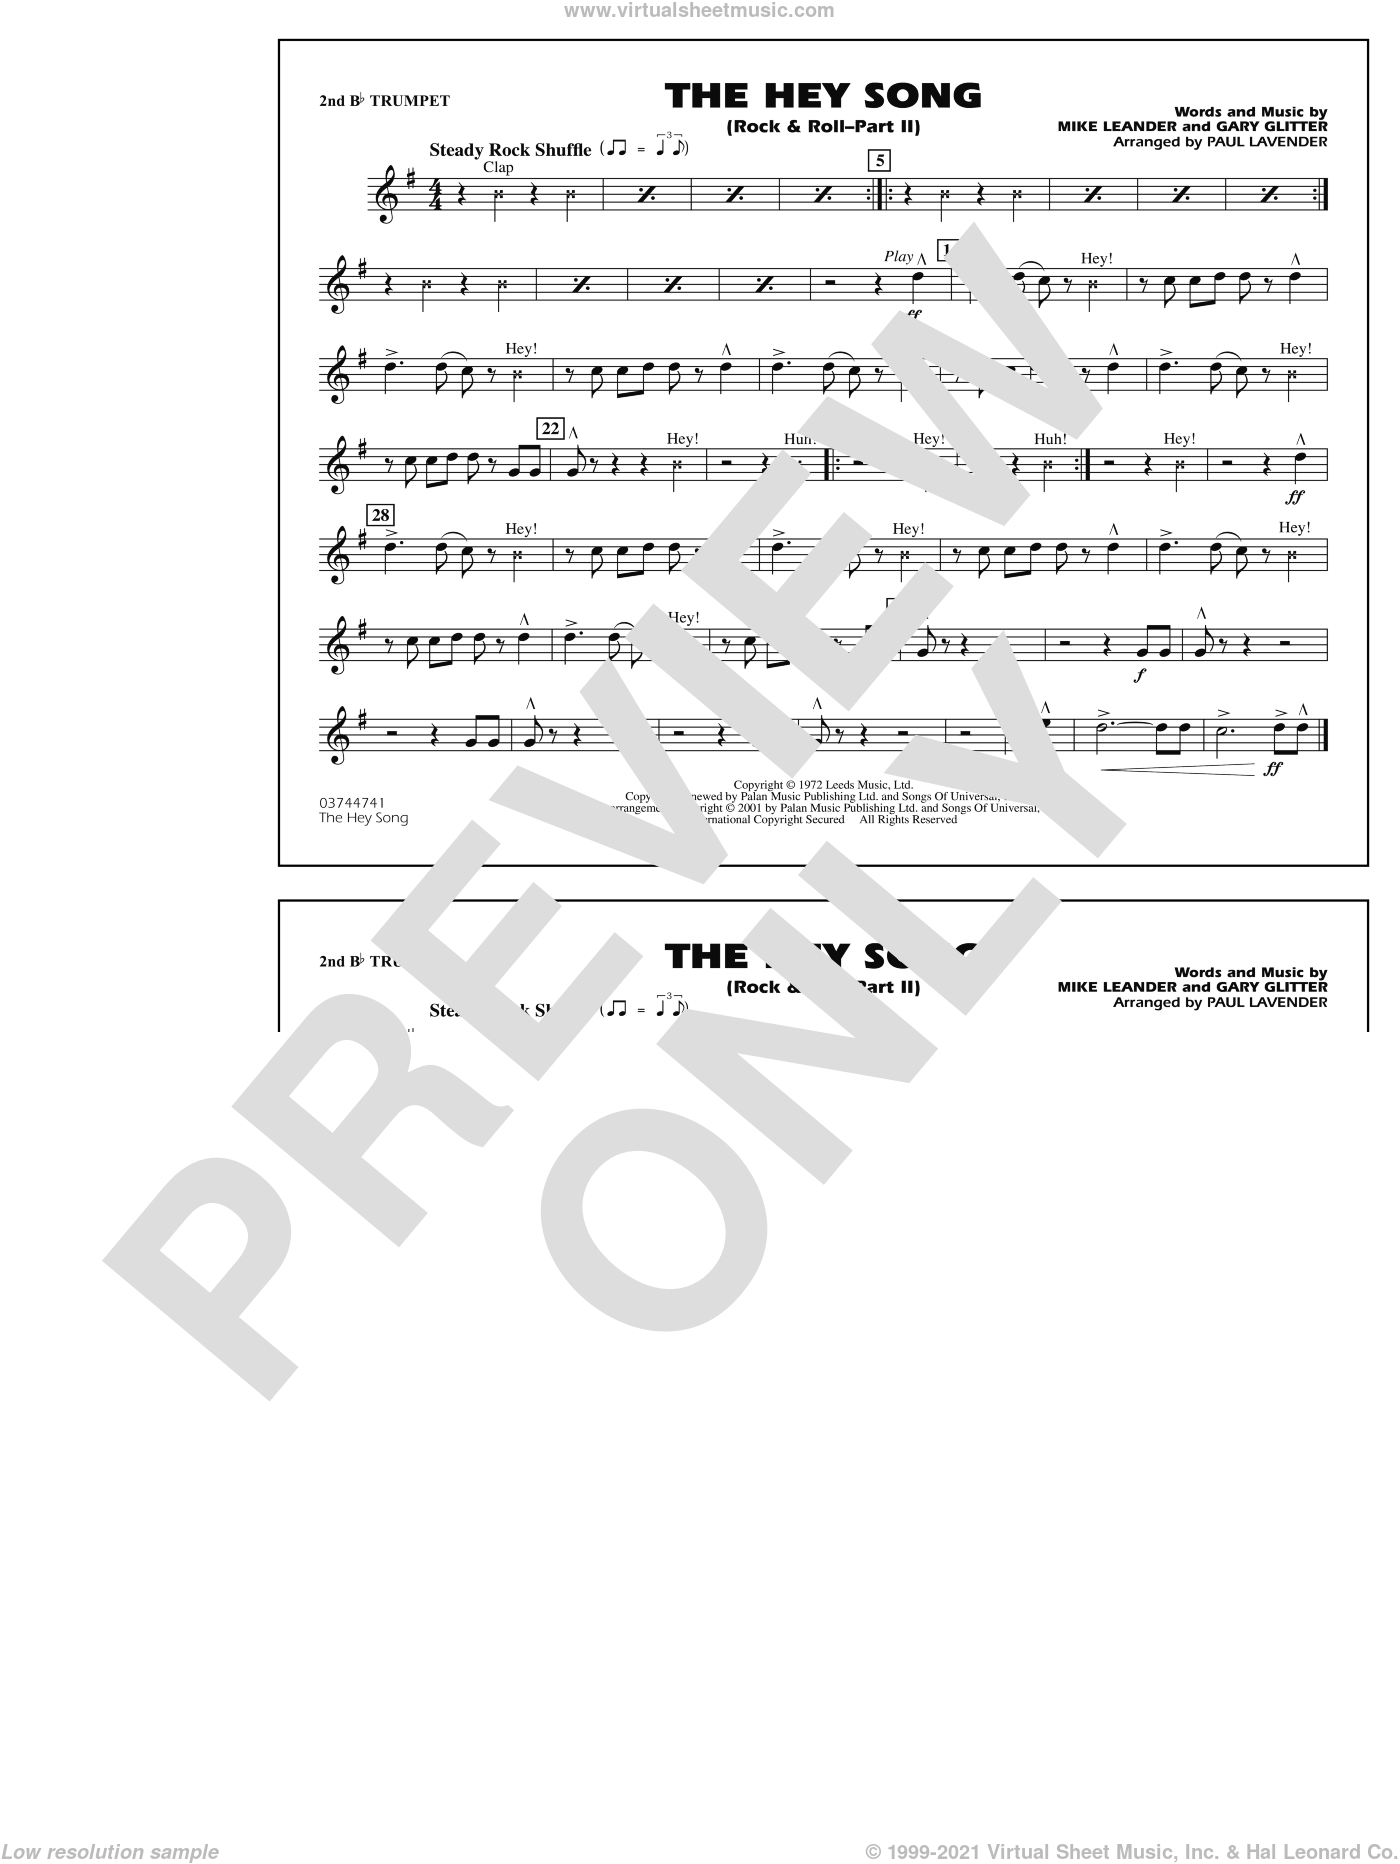 Rock and Roll, part ii (the hey song) sheet music for marching band (2nd Bb trumpet) by Paul Lavender, Mike Leander and Gary Glitter, intermediate skill level